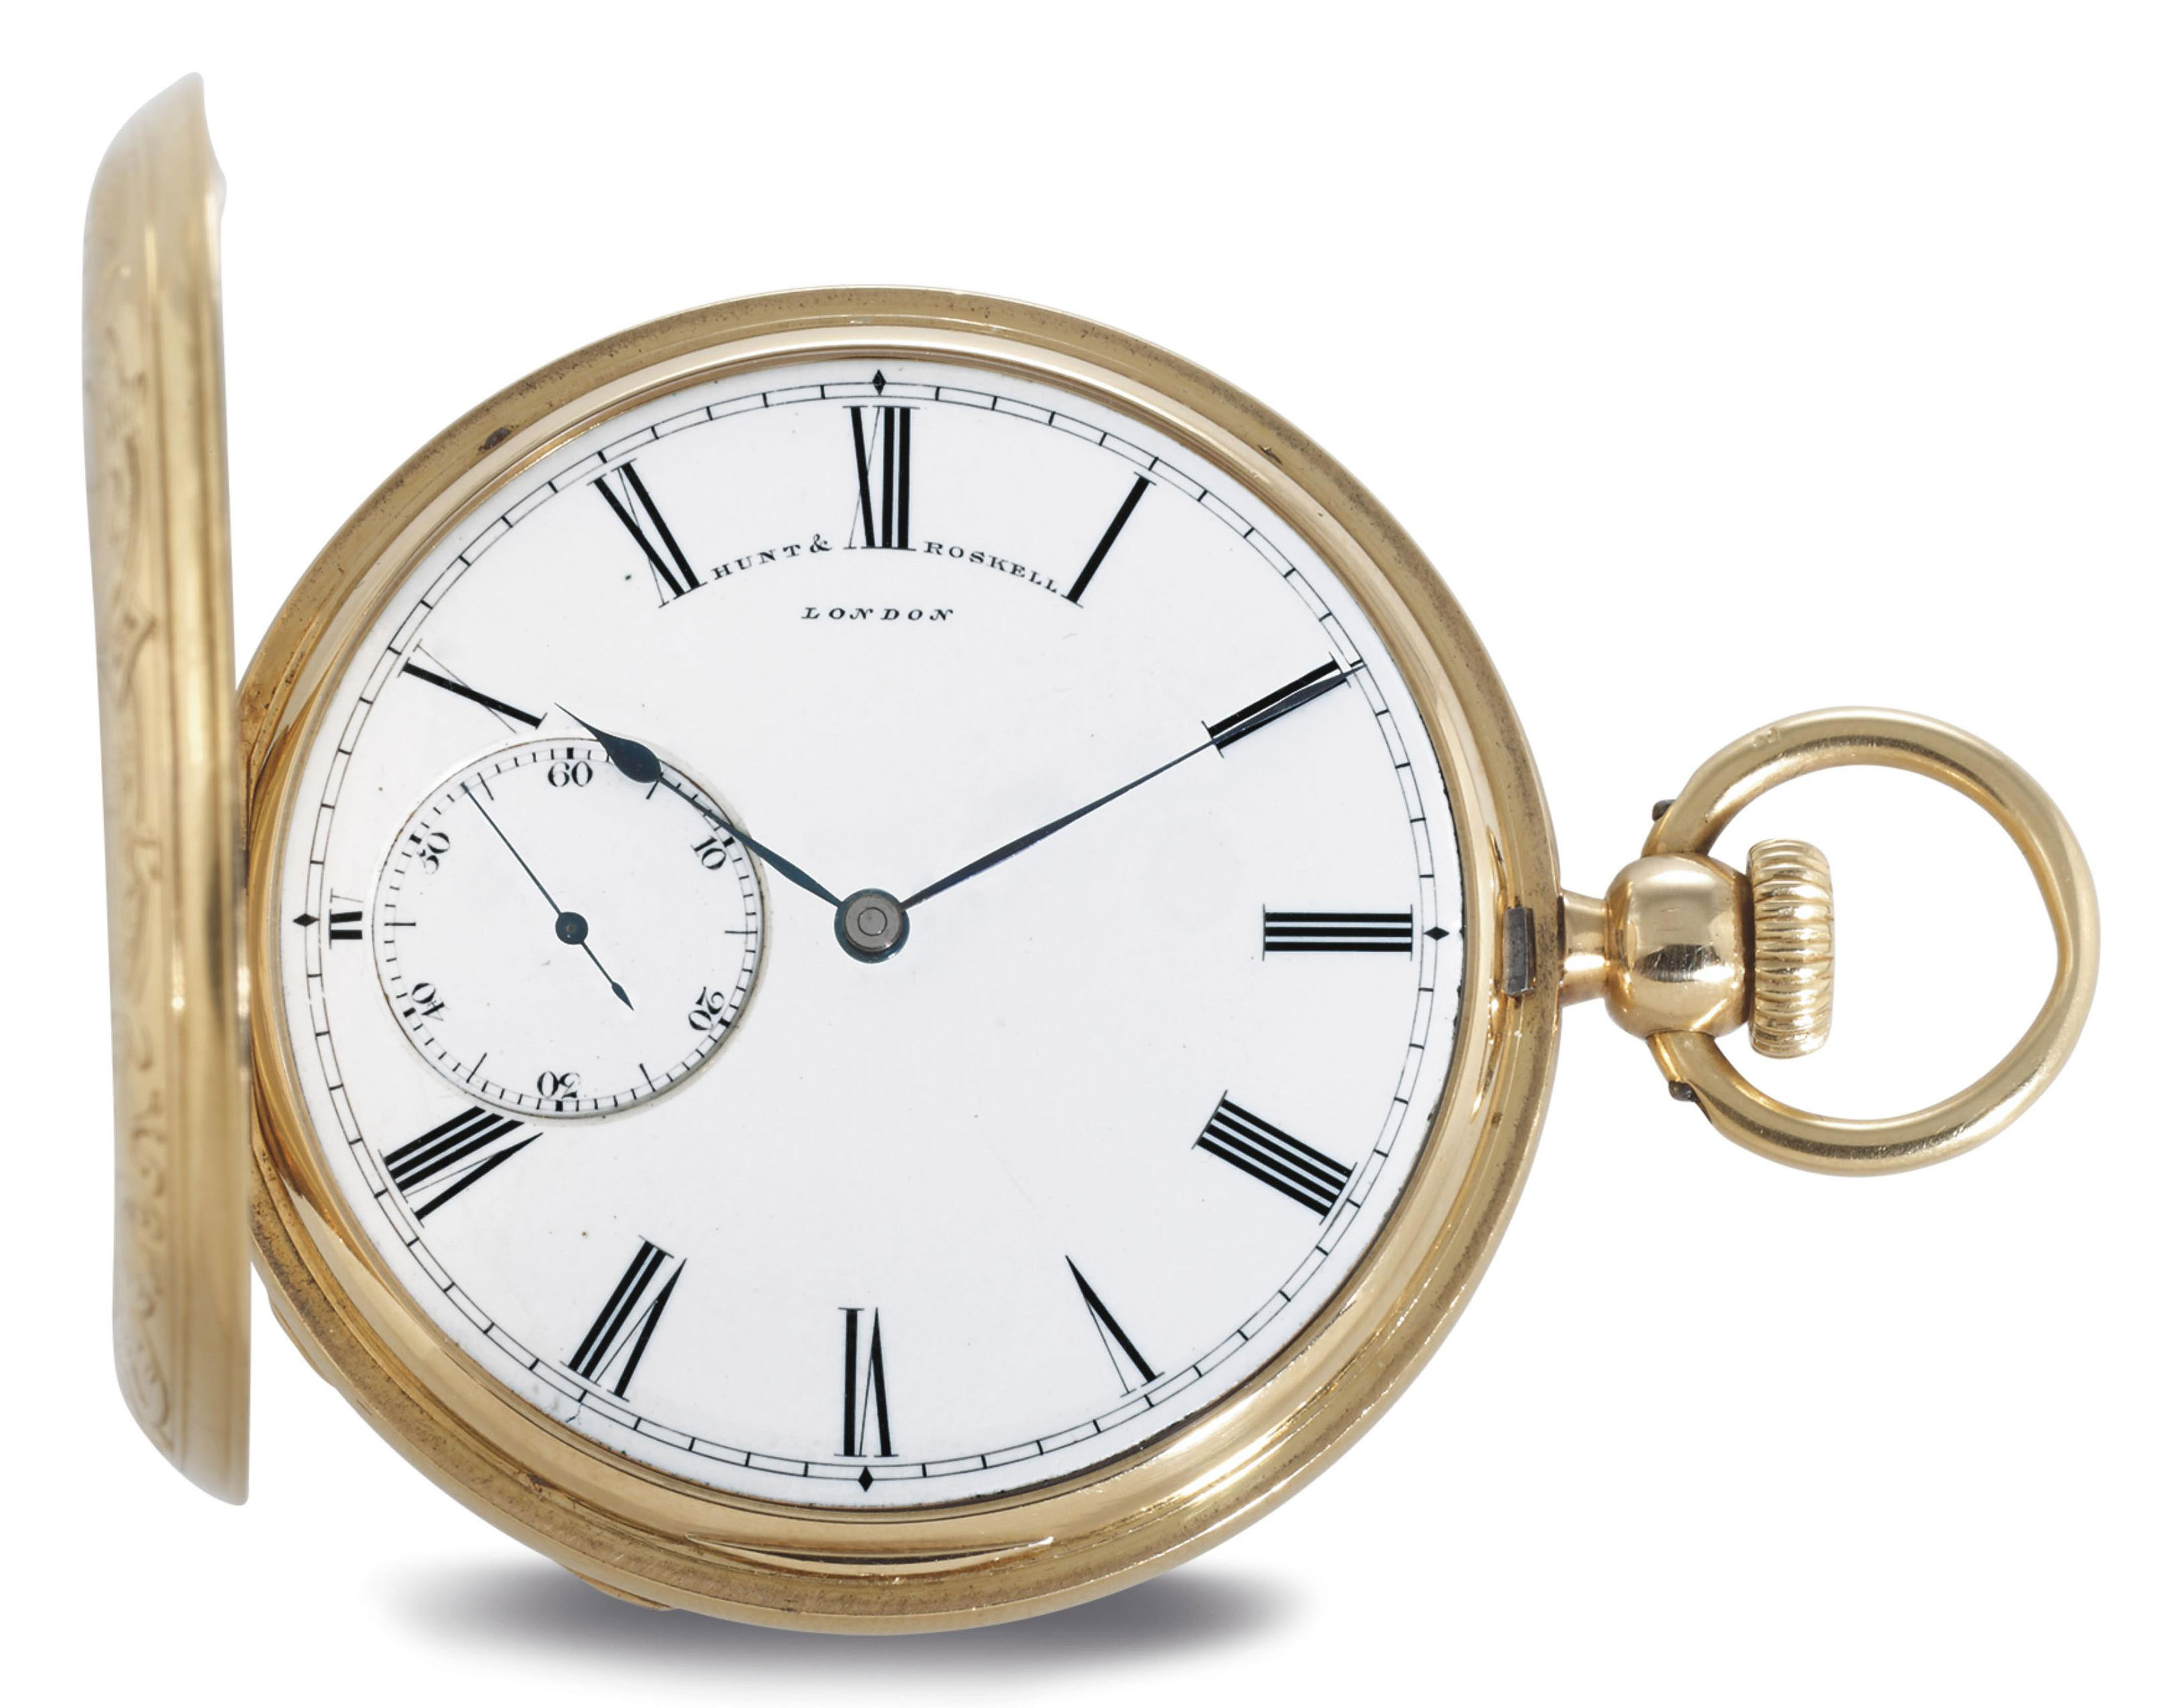 HUNT & ROSKELL. AN 18K GOLD HUNTER CASE DETENT POCKET CHRONOMETER WITH ECCENTRIC SECONDS